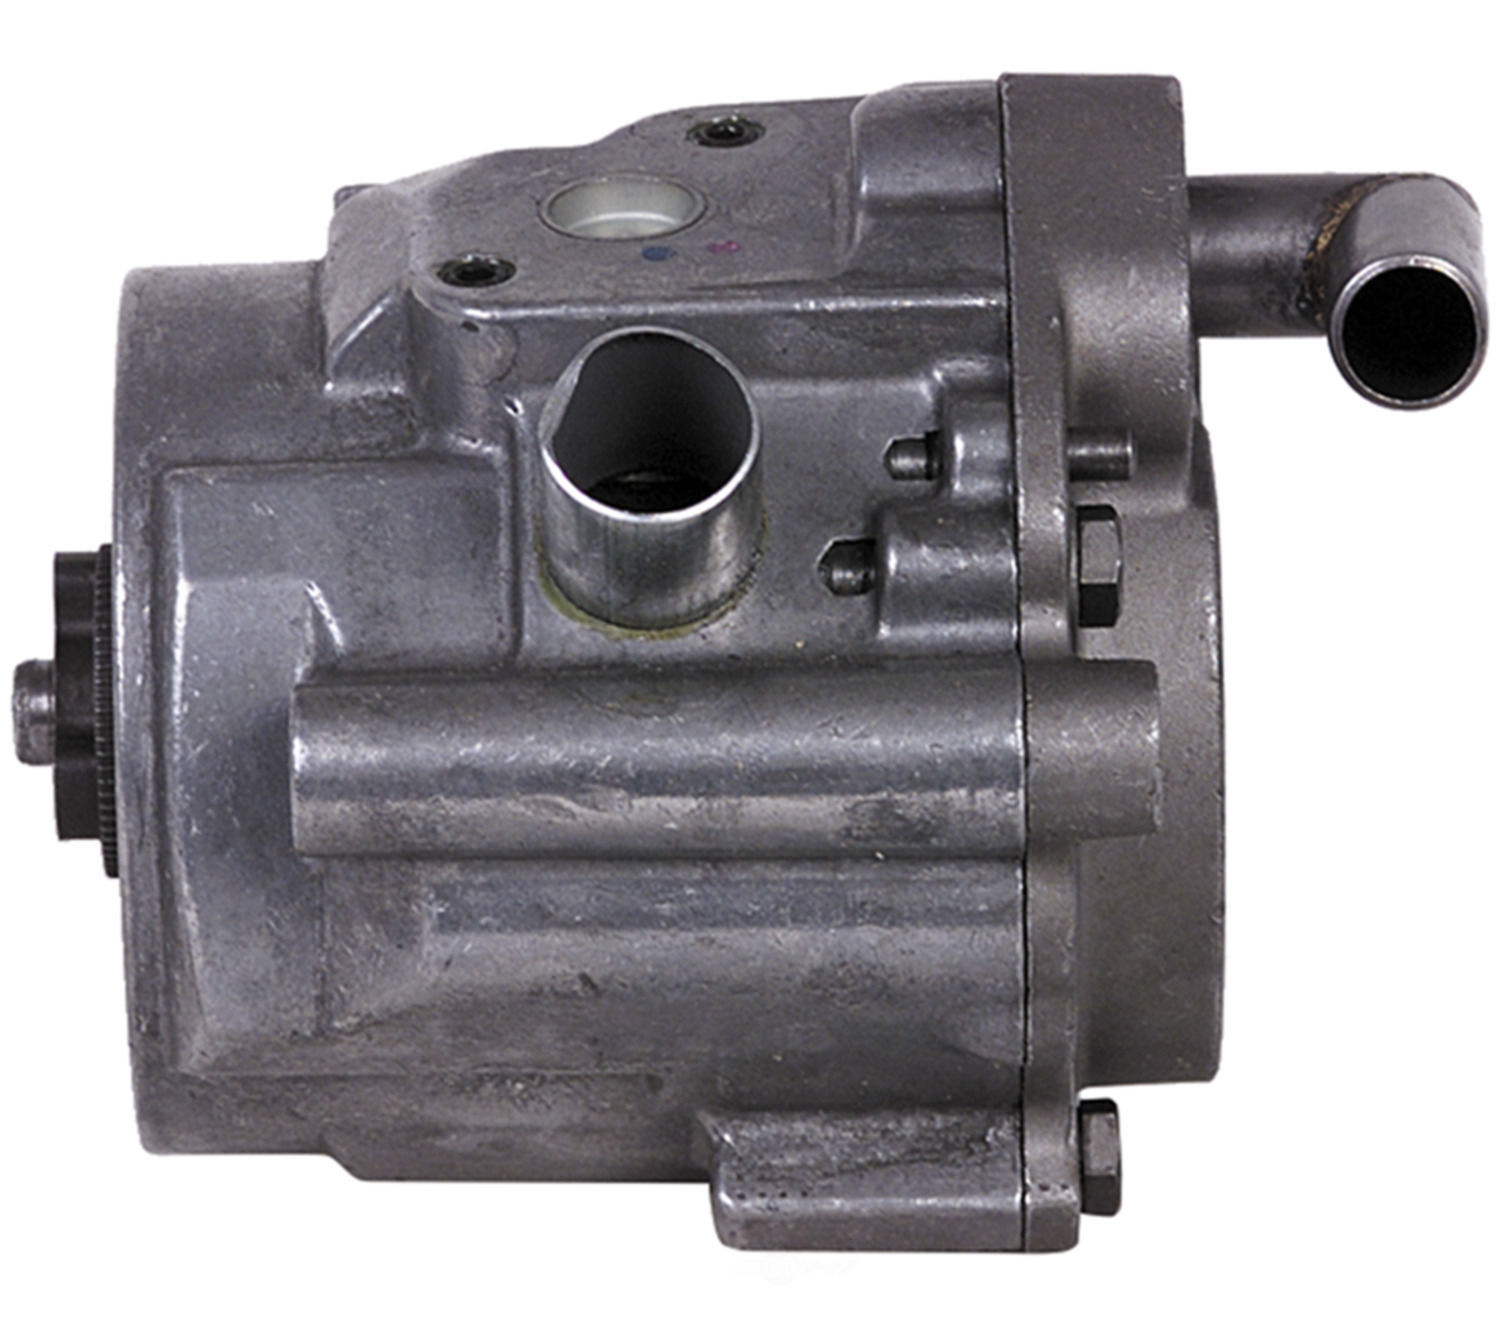 Find Secondary Air Injection Pump Smog Reman Fits 94 02 Remanufactured Fuel Dodge Ram 2500